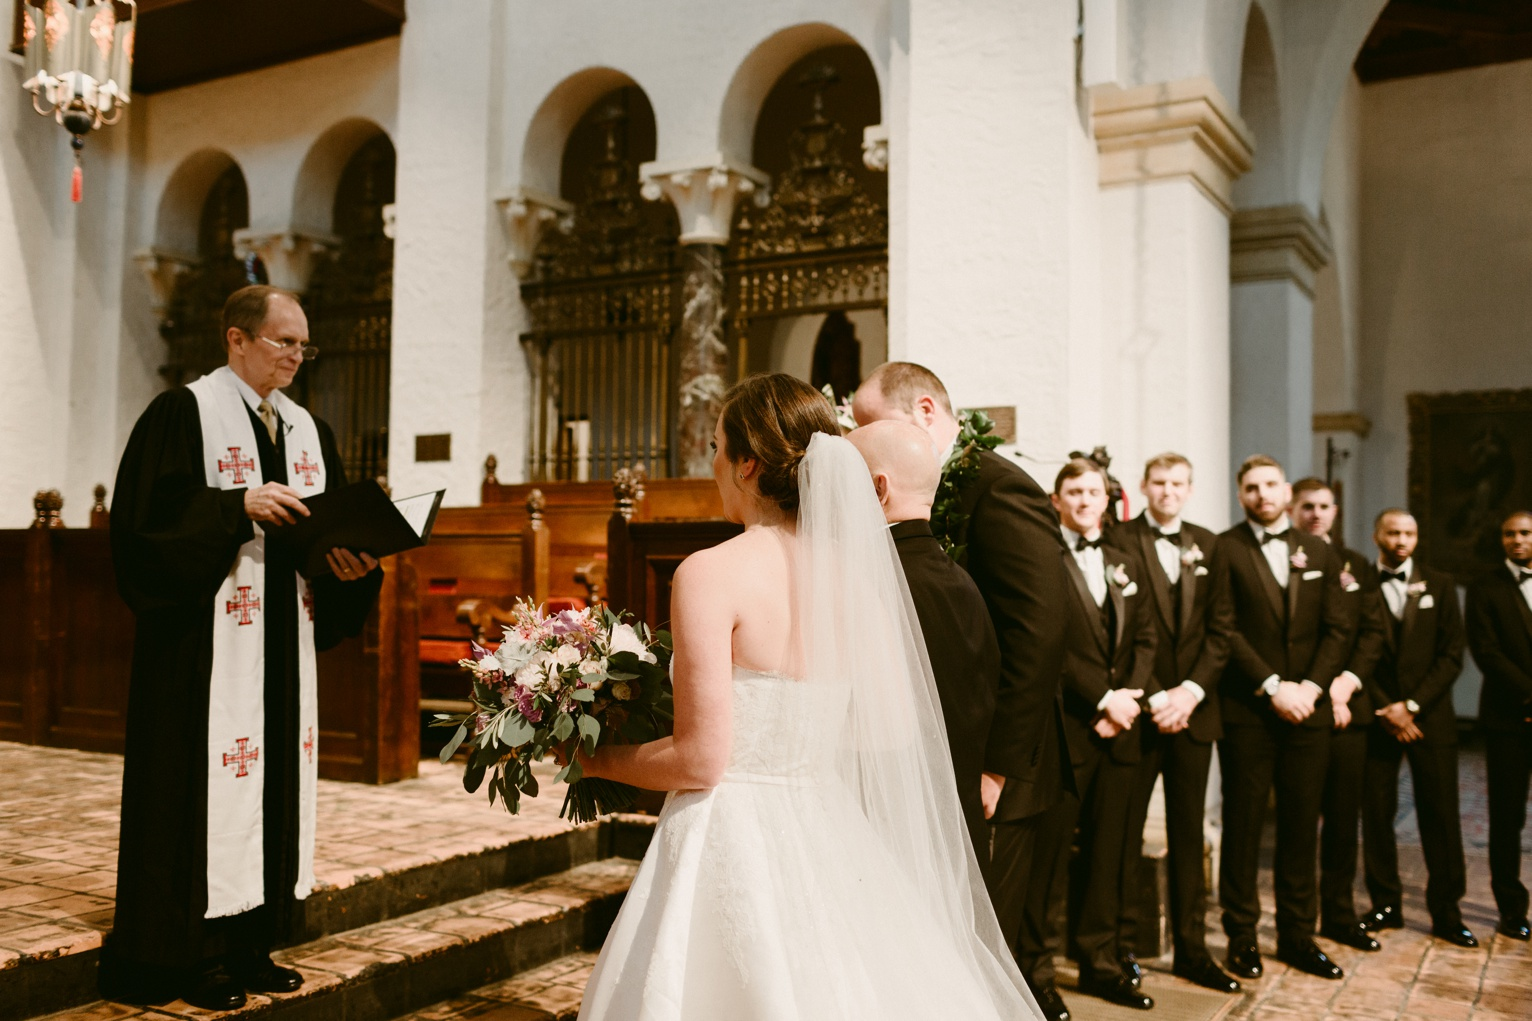 Dreamtownco.com_blog_David&Kiana_Wedding_0069.jpg